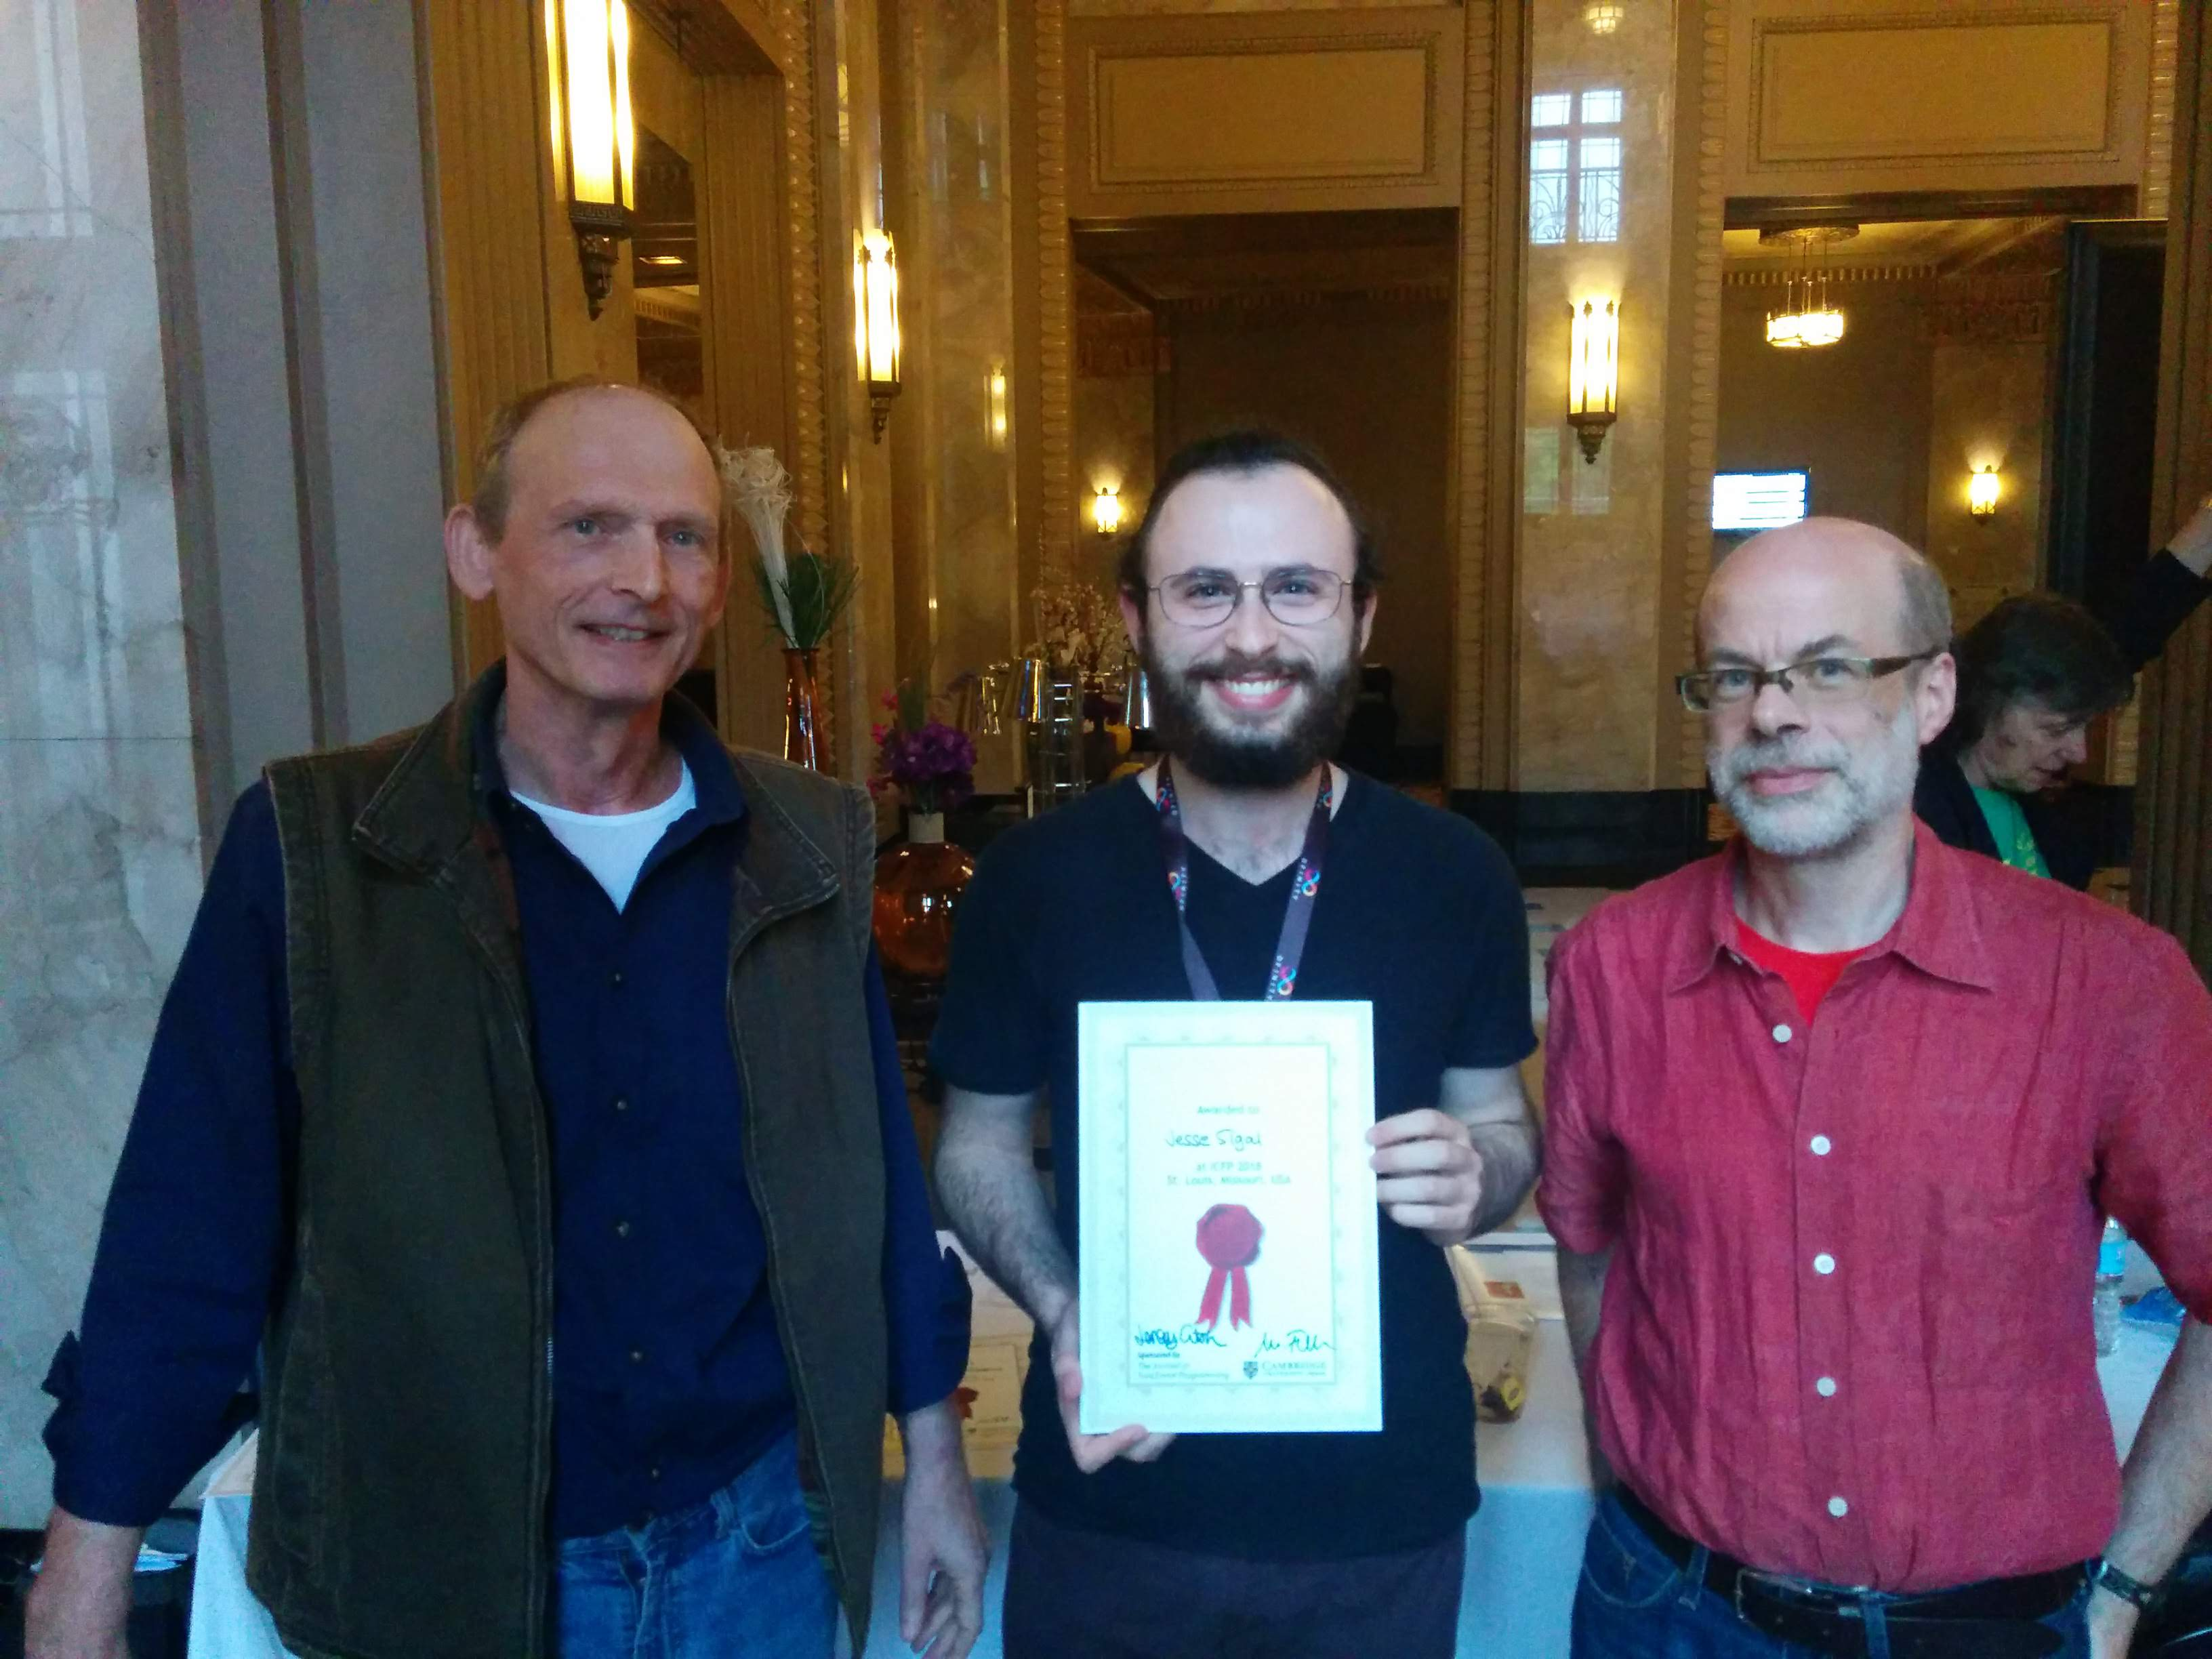 Jesse Sigal (centre)with the Editors of the Journal of Functional Programming, Prof. Matthias Felleisen from Northeastern University Boston (left) and Prof. Jeremy Gibbons from Oxford University